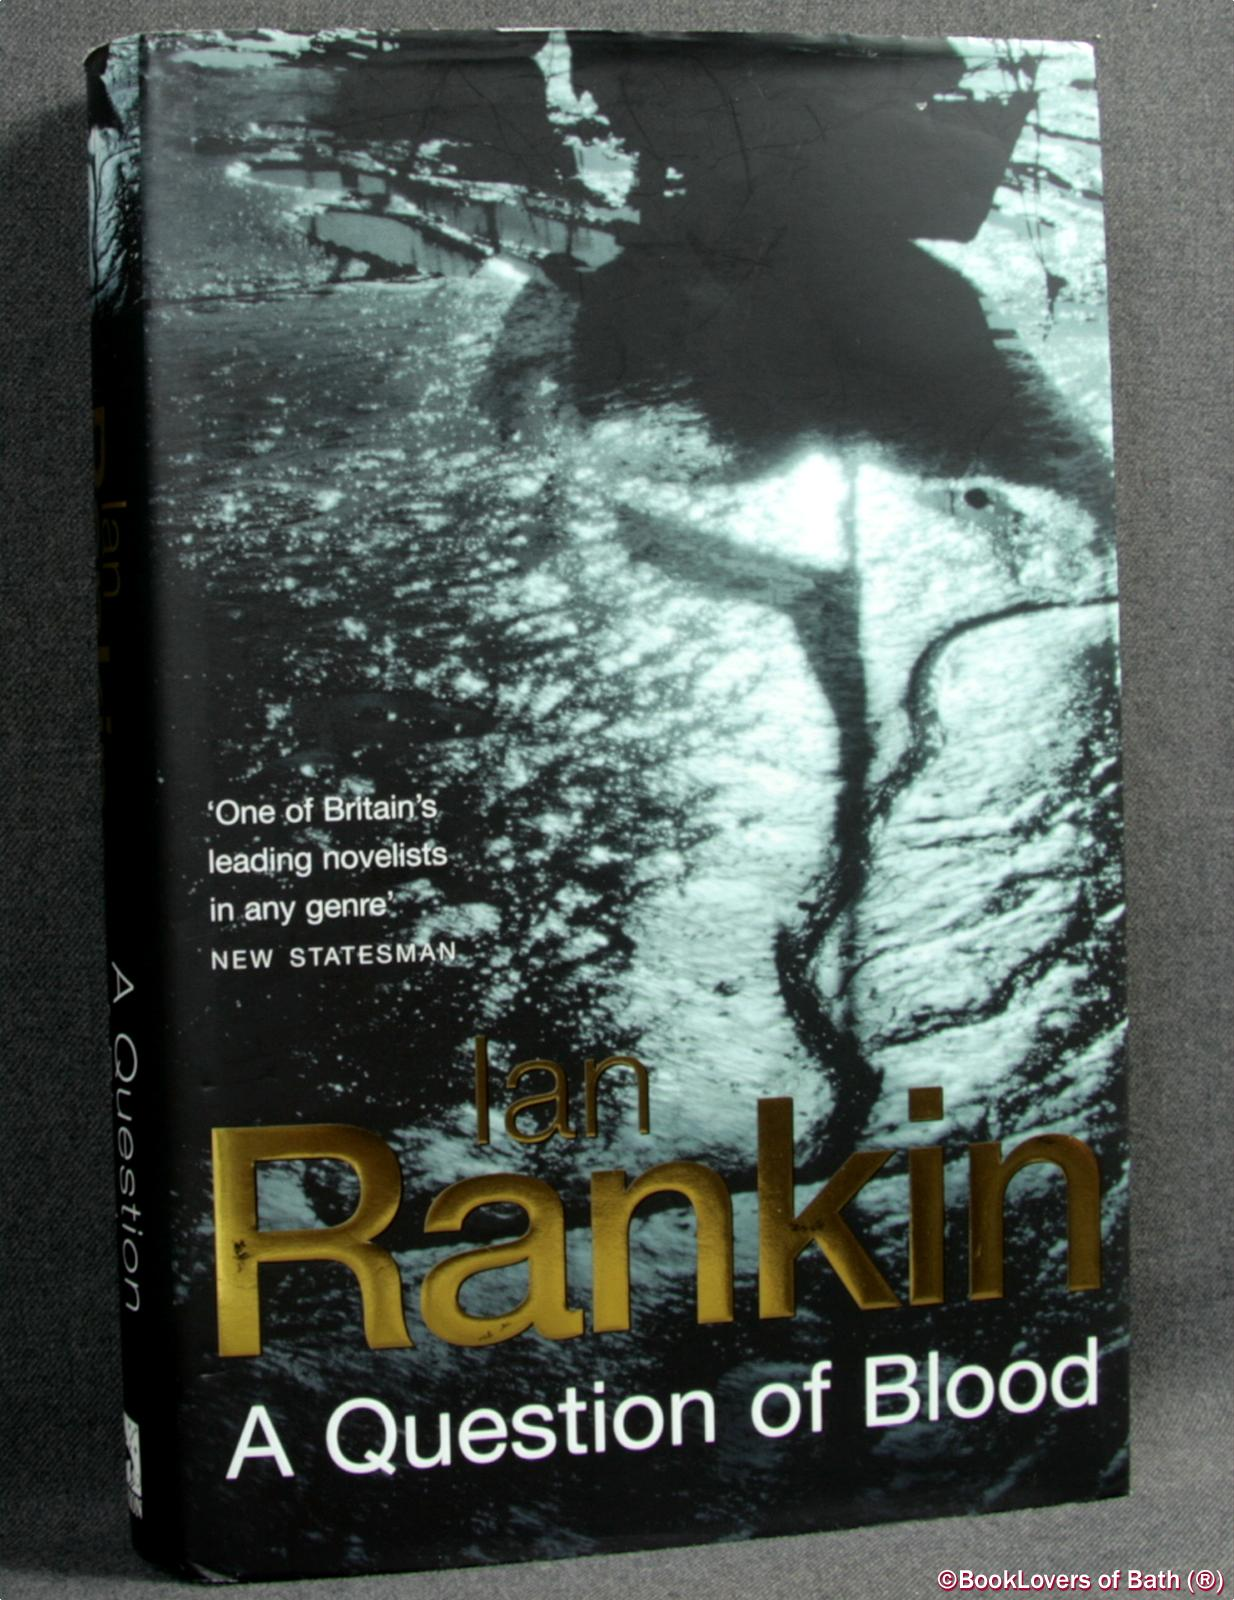 A Question of Blood - Ian Rankin